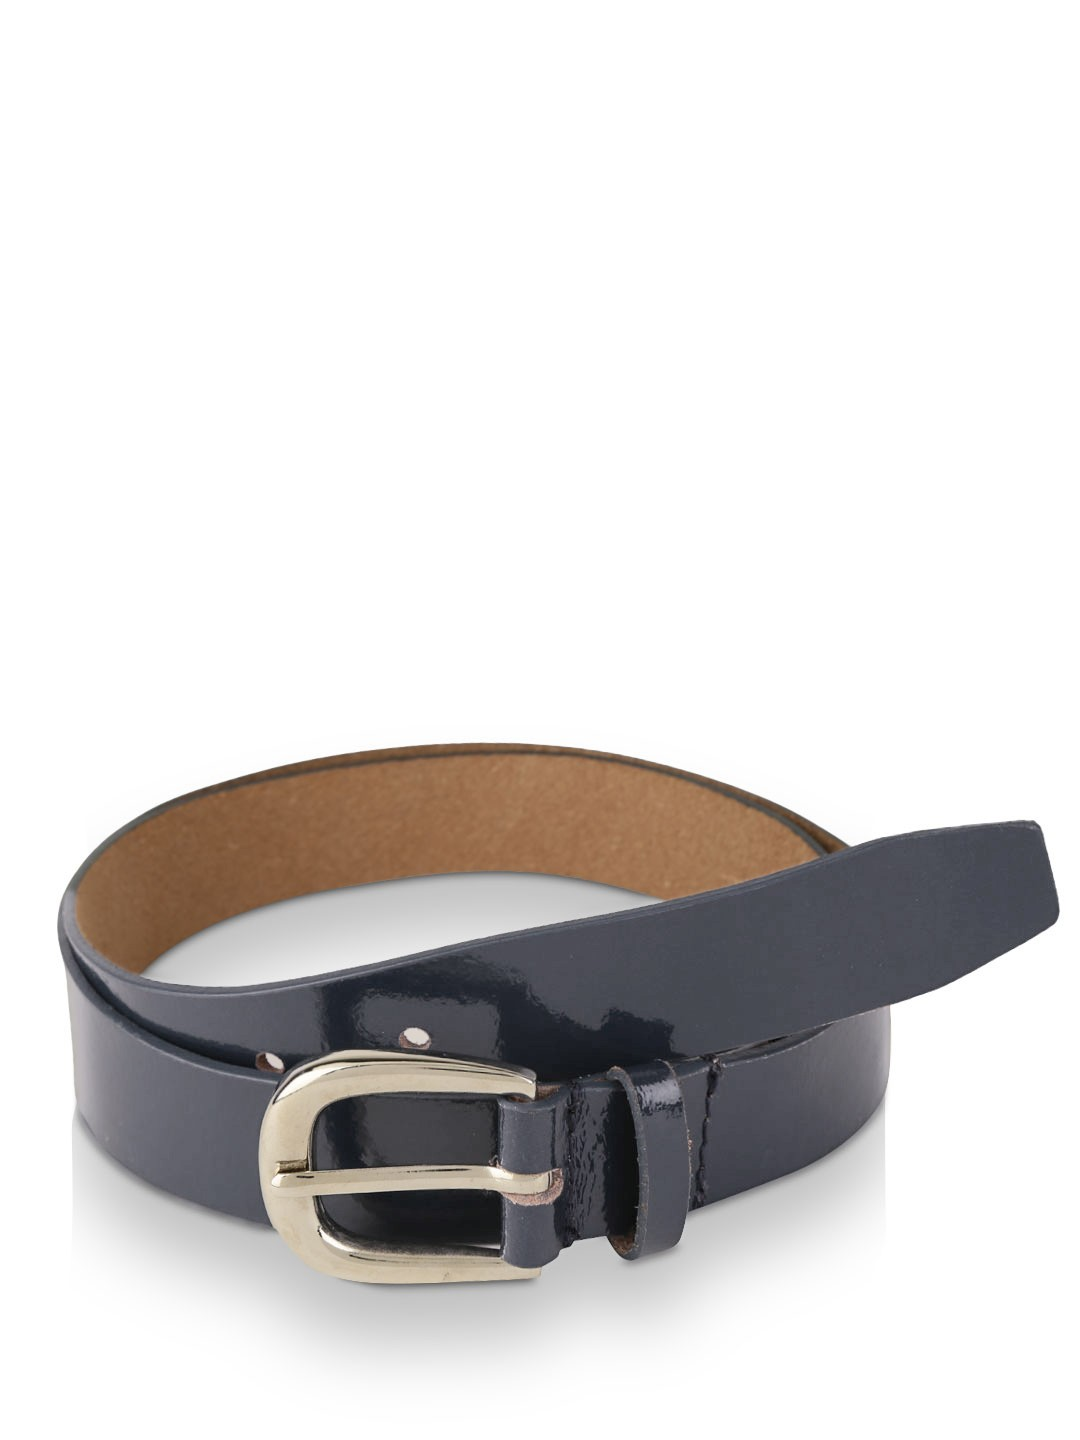 Buy PARADIGM DESIGN LAB Patent Leather Belt For Men